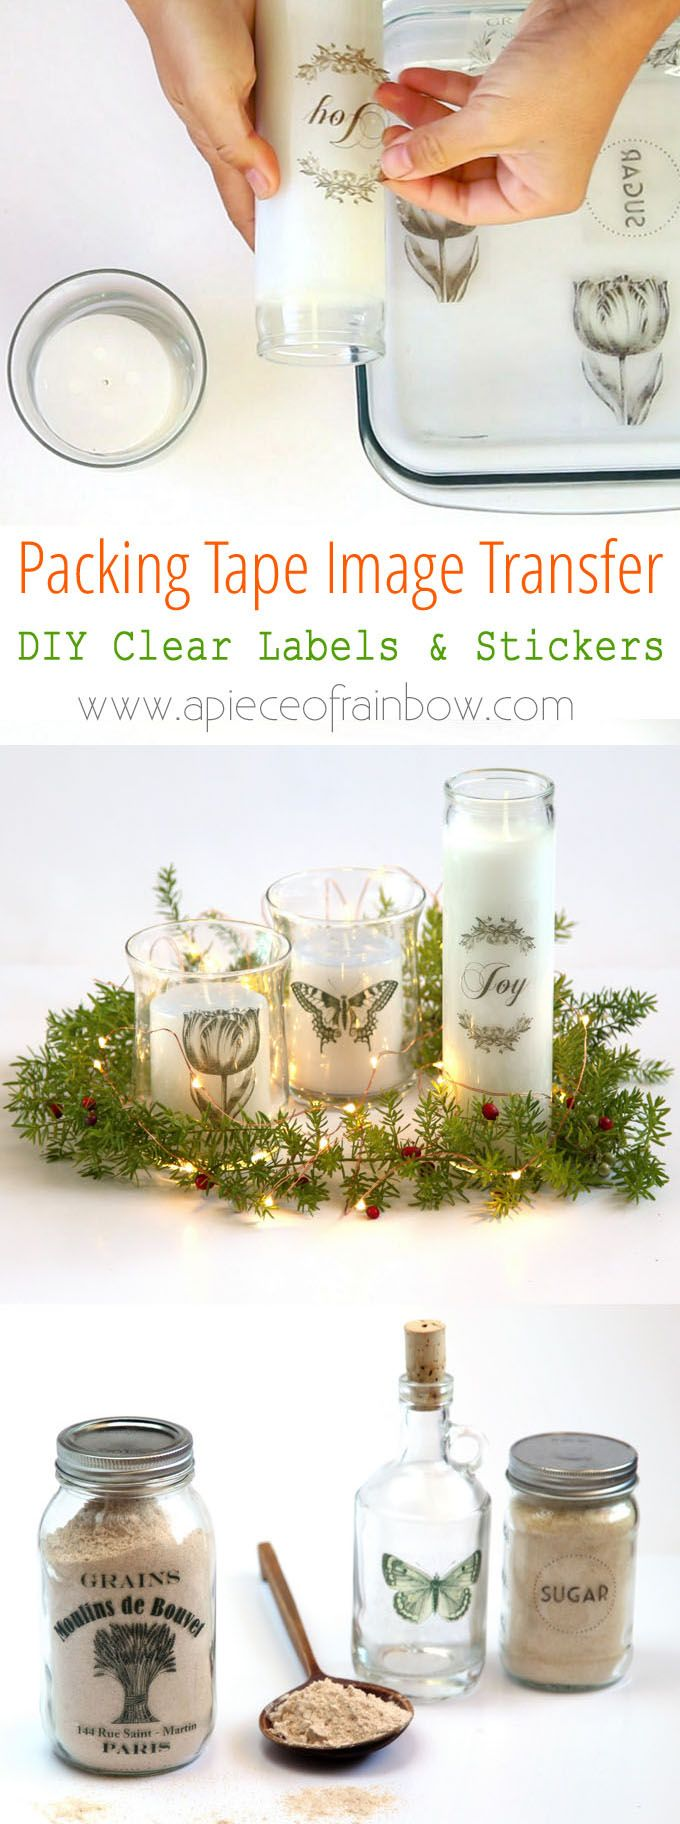 Make clear stickers using an easy packing tape image transfer method. Great for pantry labels, gift tags, custom designs on glass, wood or metal objects! - A Piece Of Rainbow